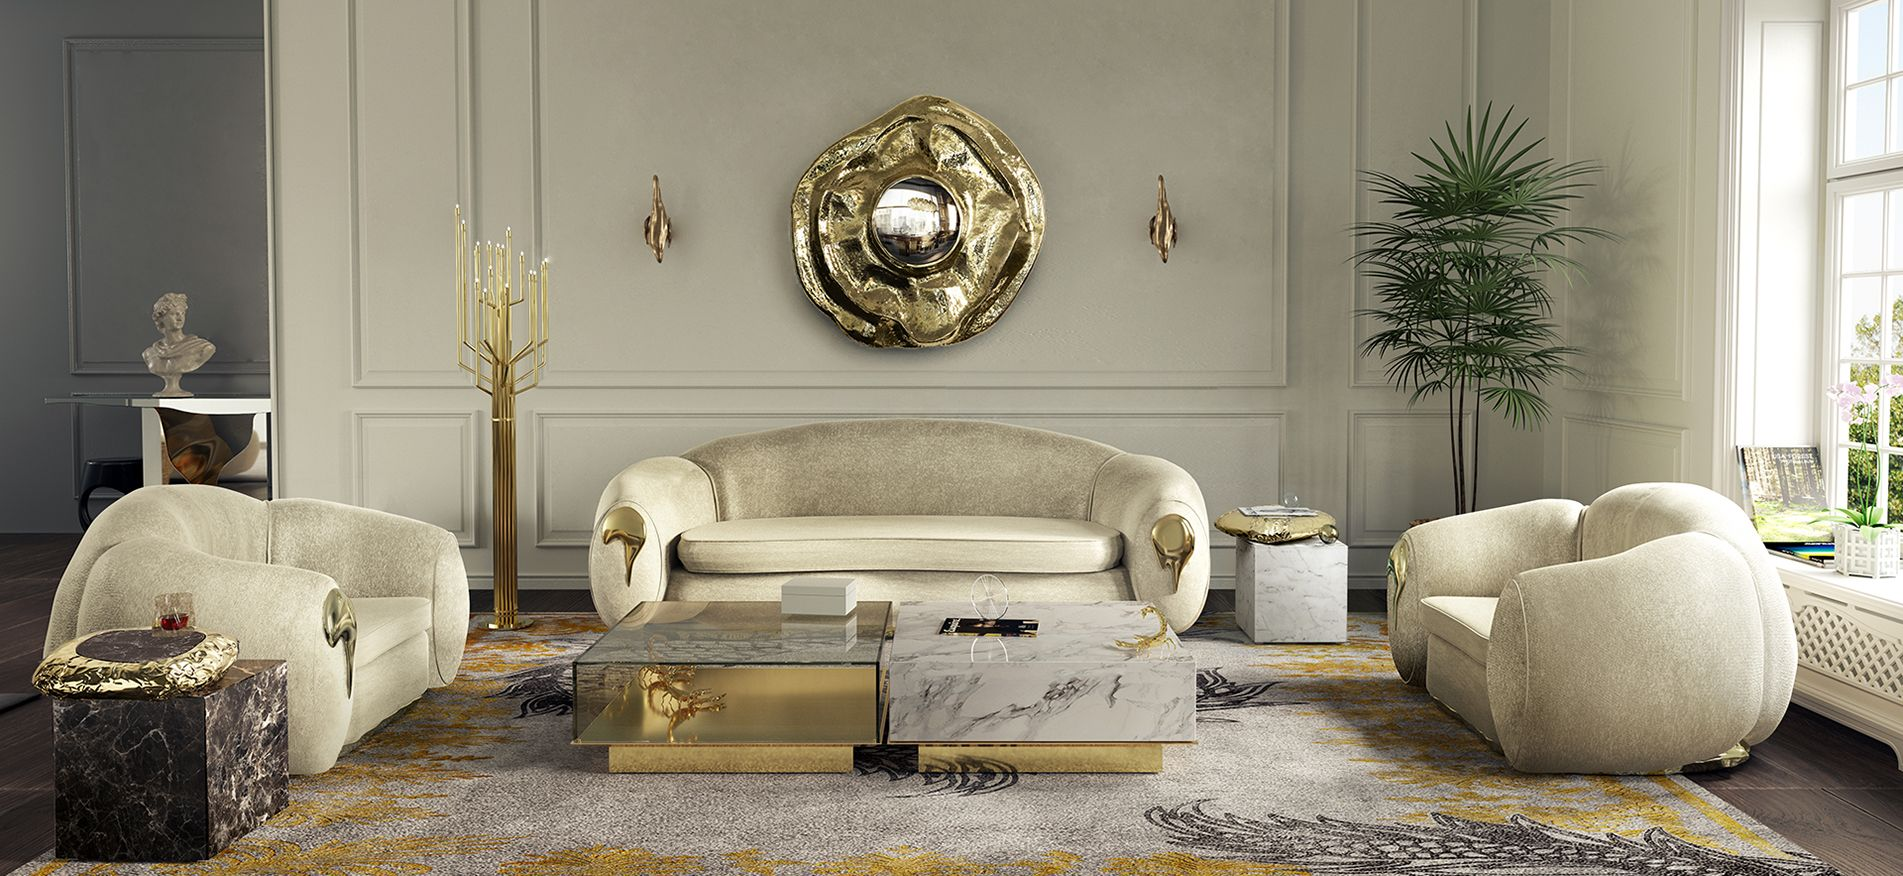 Get Impressed By Some Remarkable And Unique Furniture Pieces By